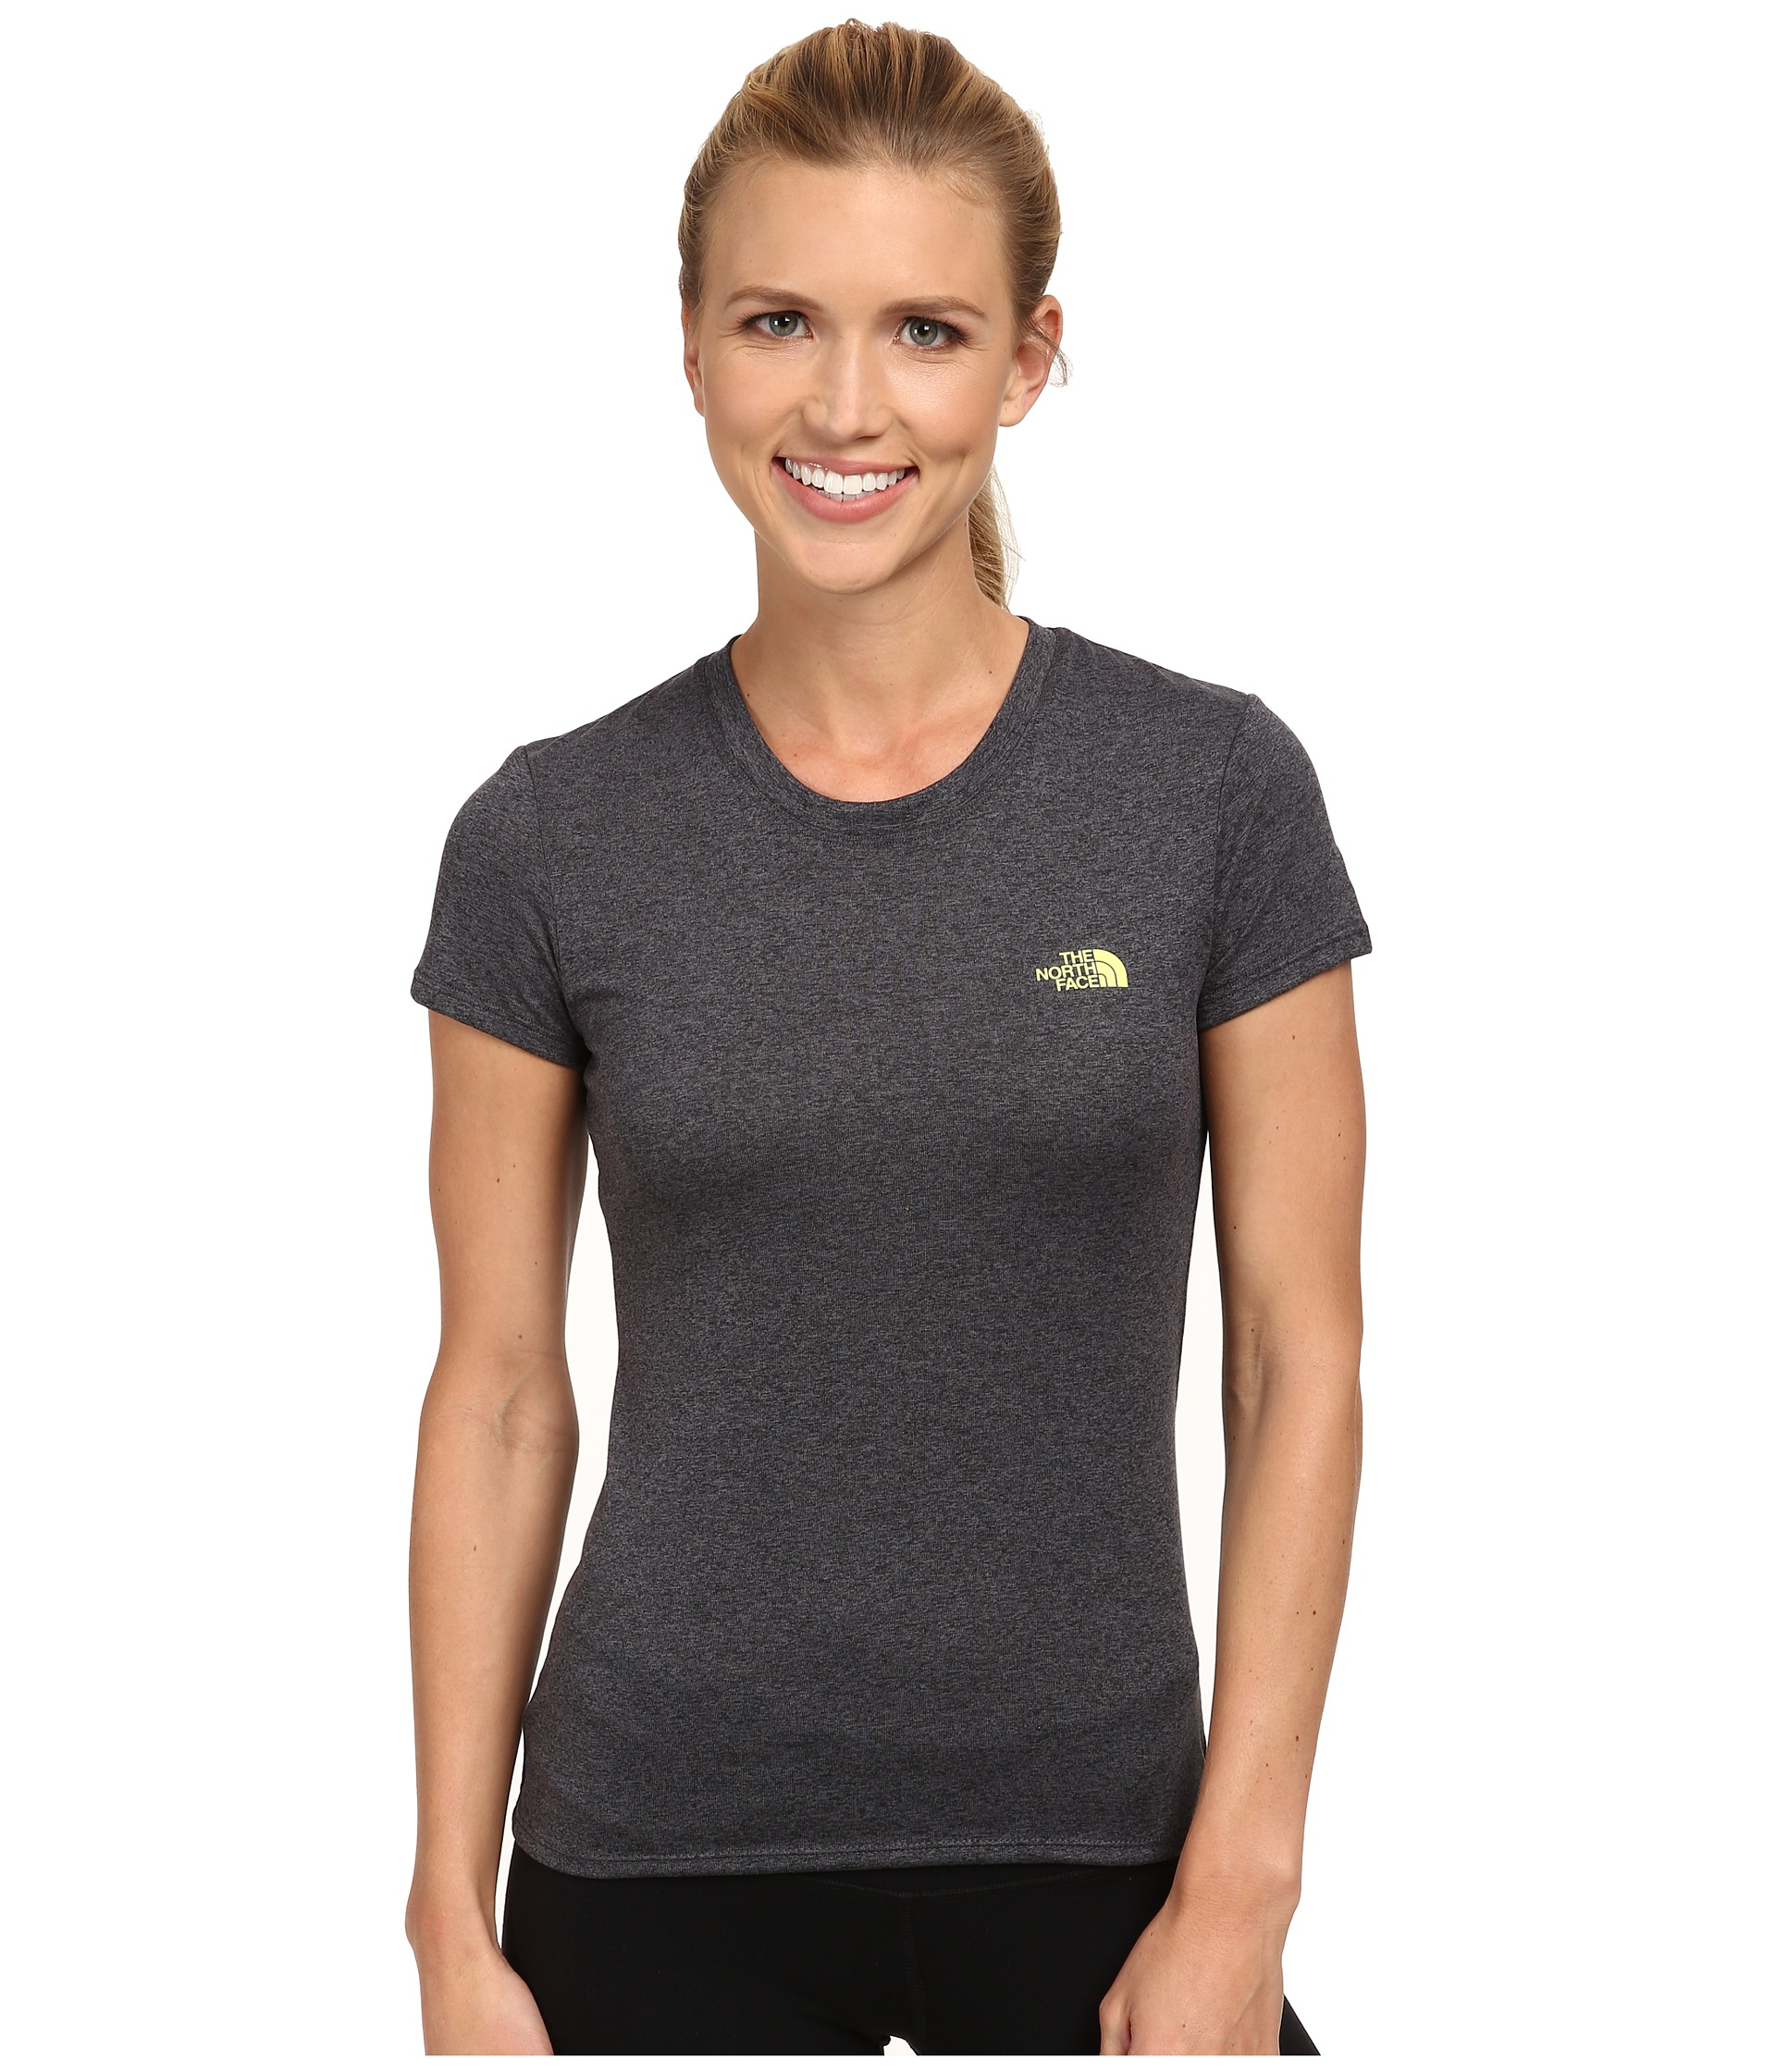 13f45ad60fca The North Face S/S Reaxion Amp Tee in Gray - Lyst